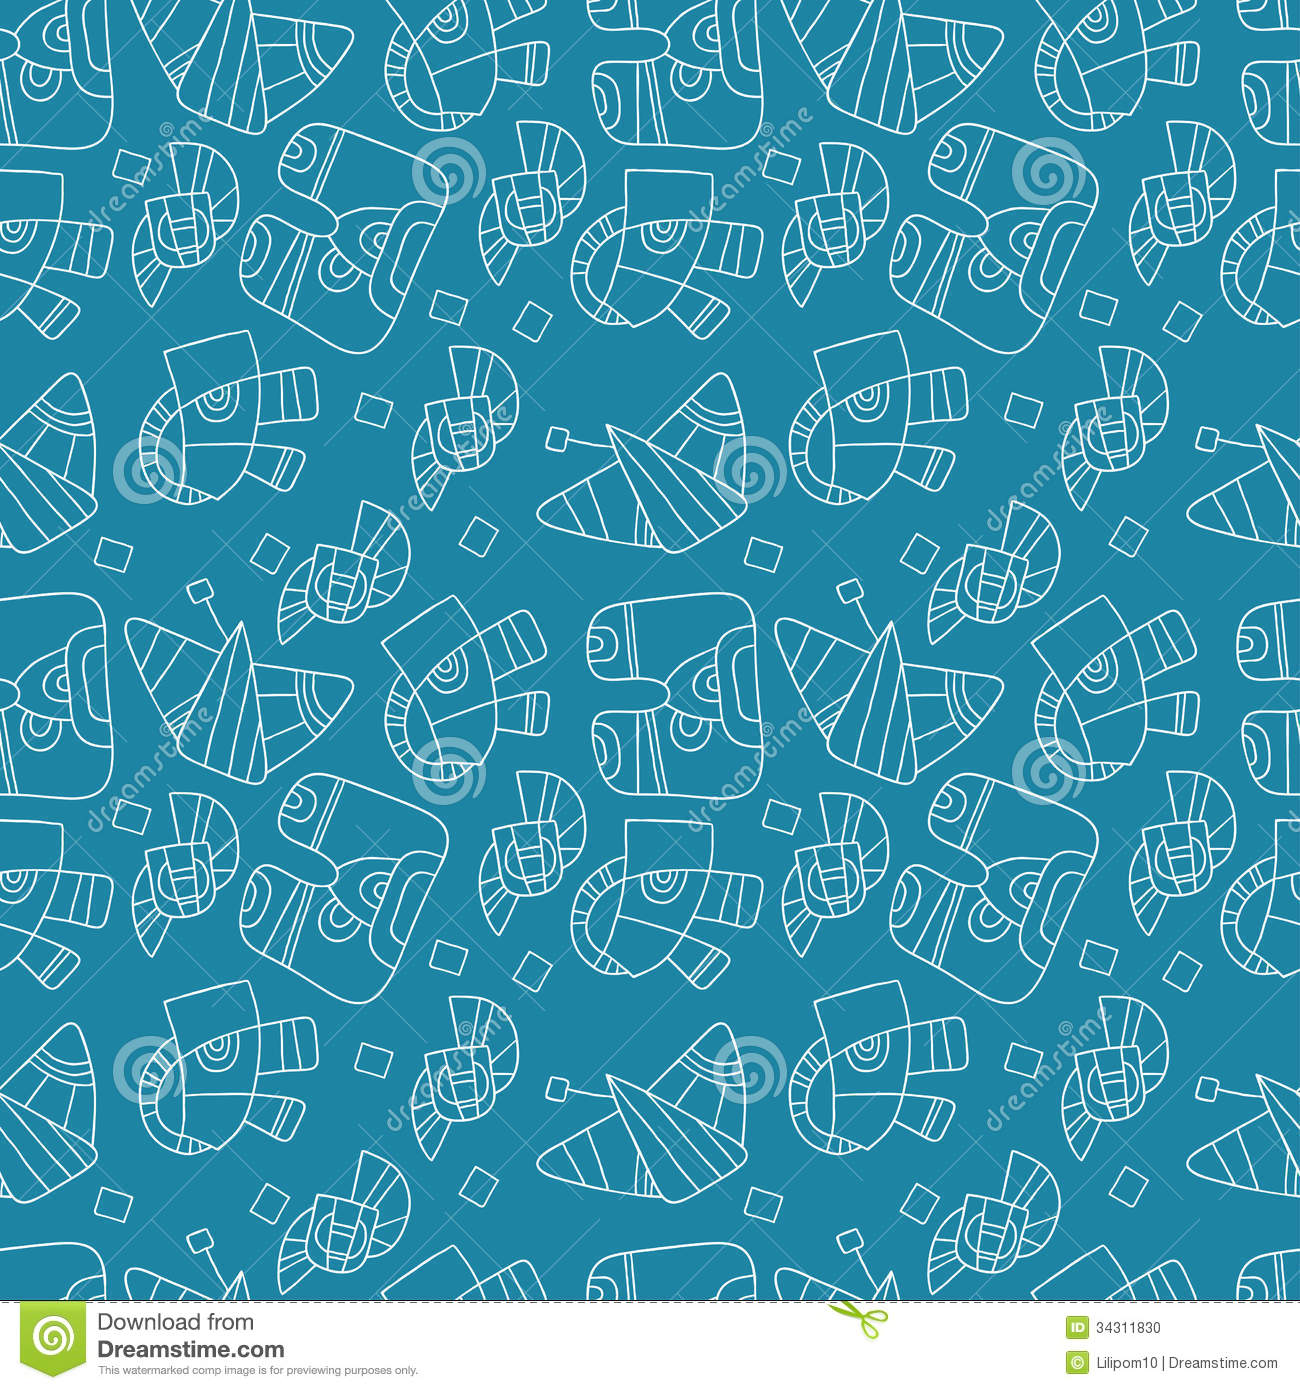 Seamless Backgrounds for Website Blue Patterns